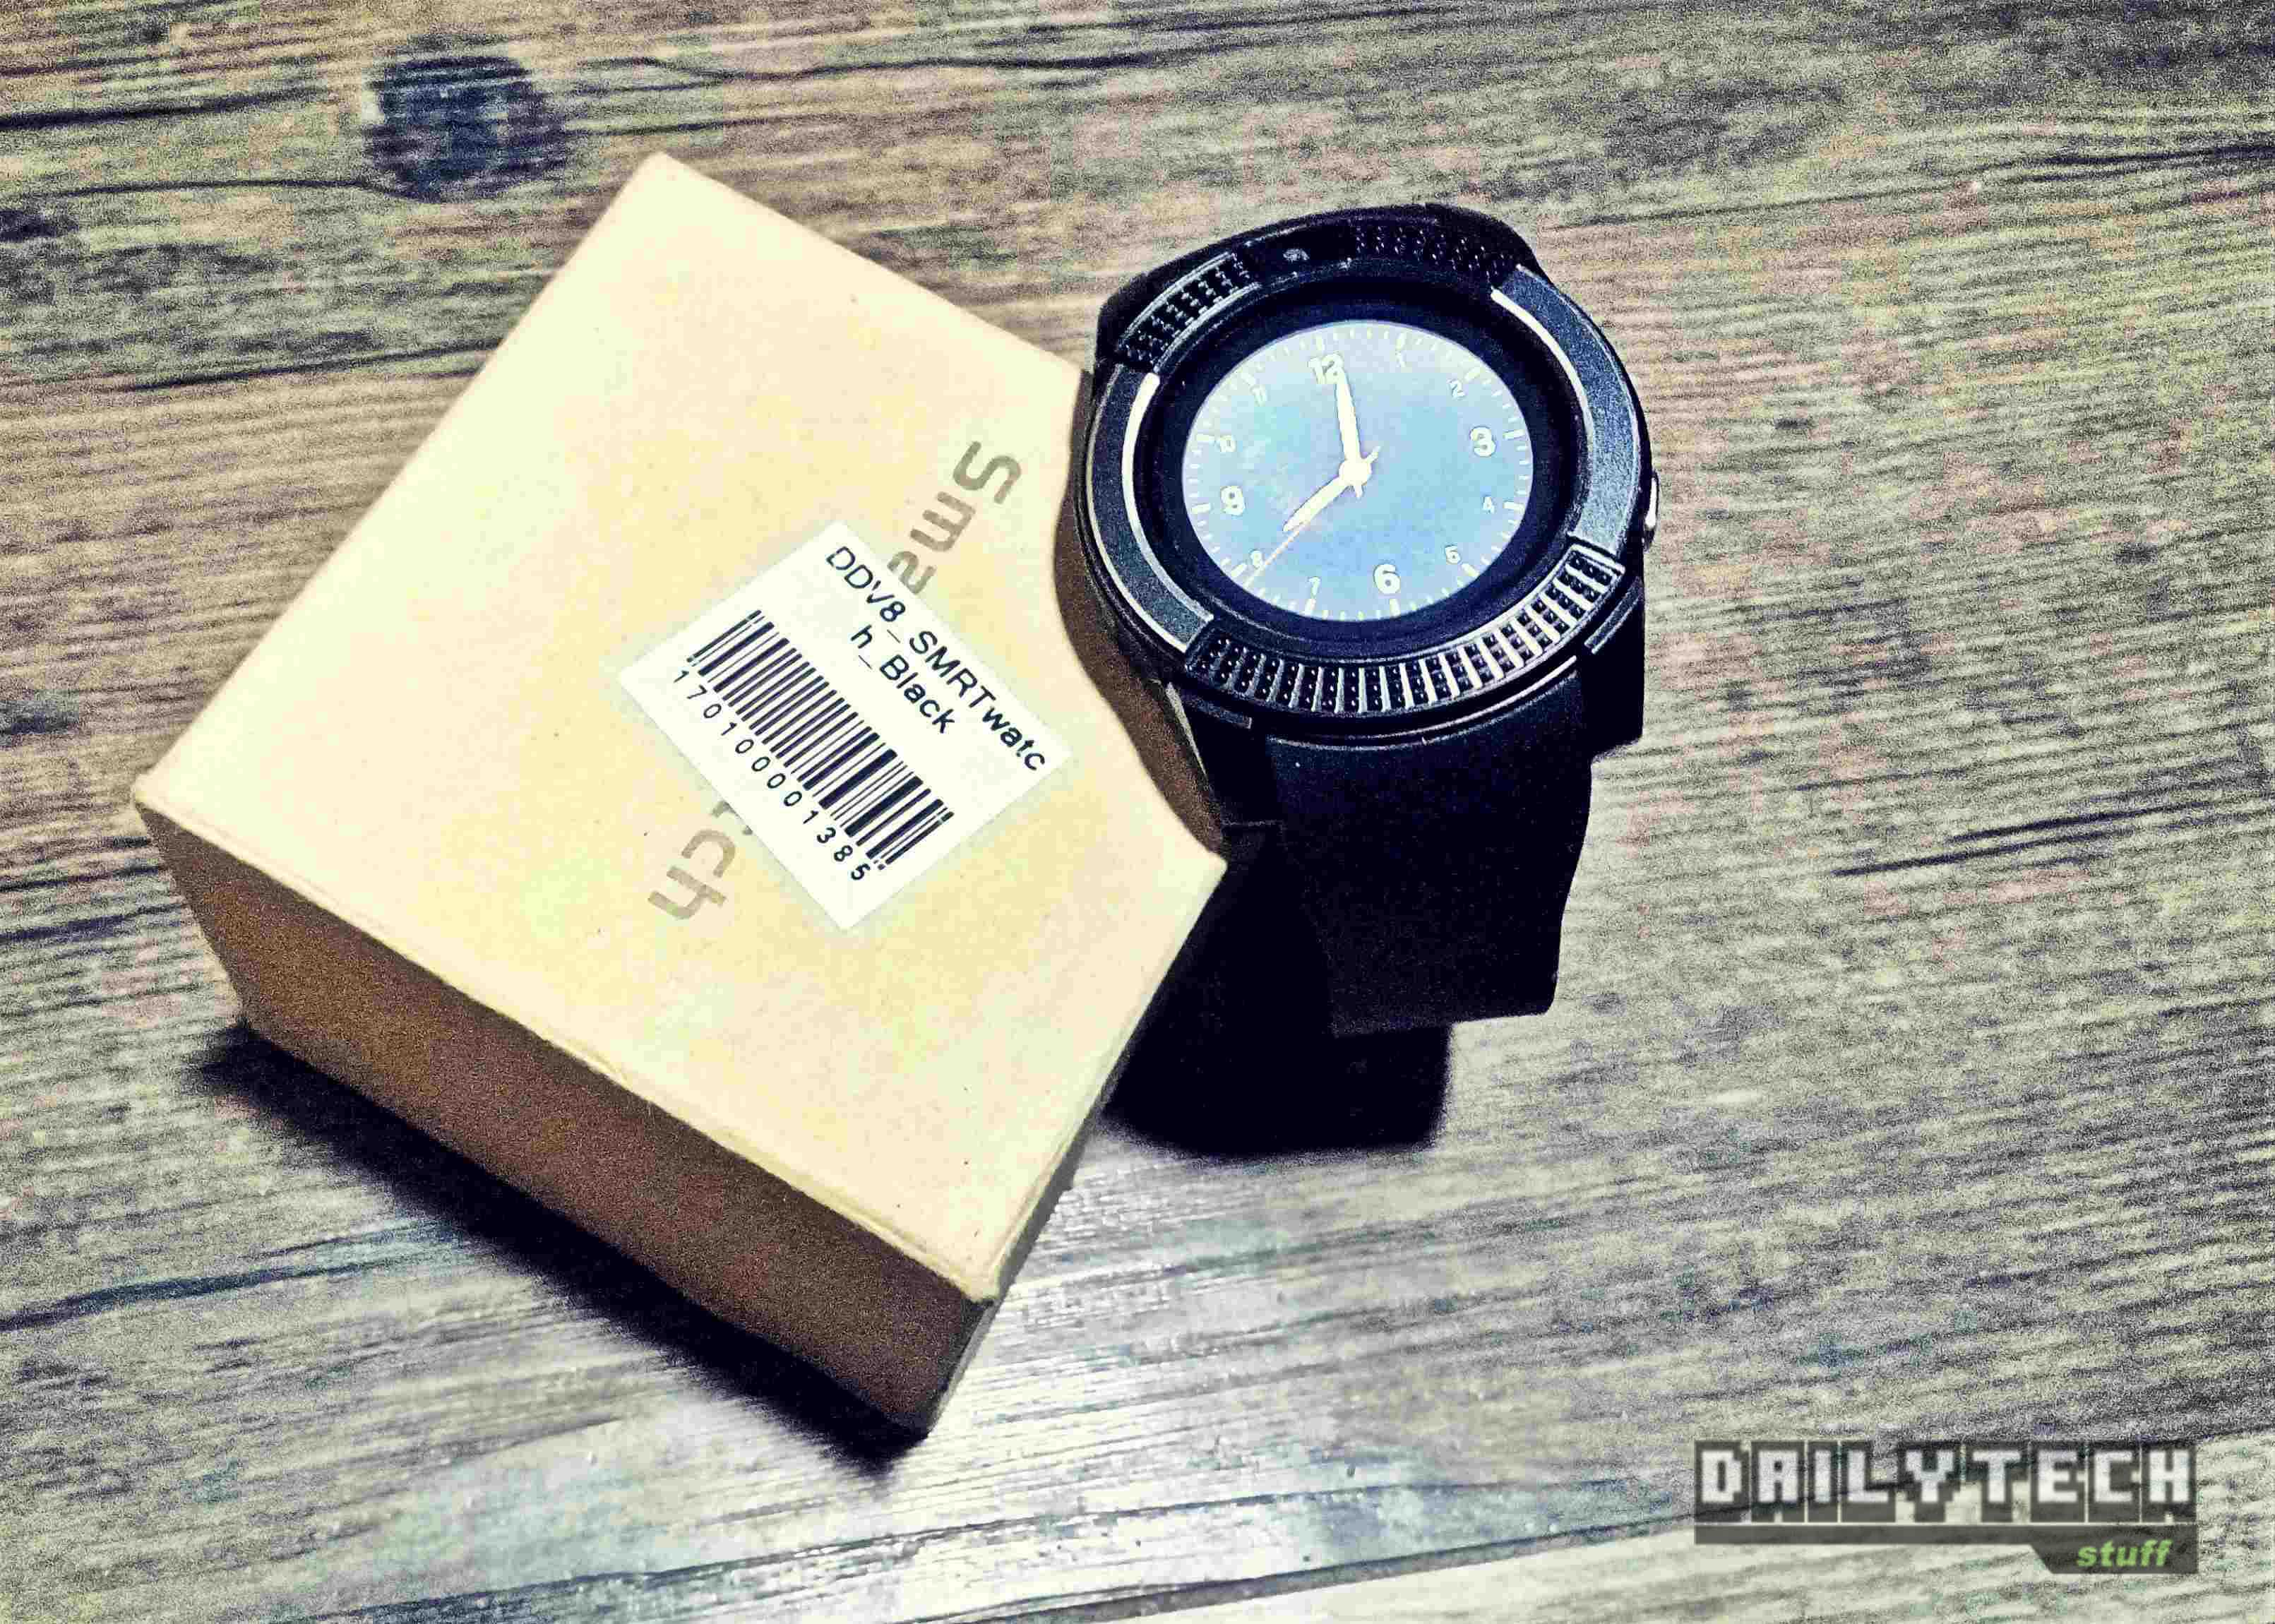 features techcrunch s connectivity screen smart and a curved blue gear smartwatch watches black samsung new